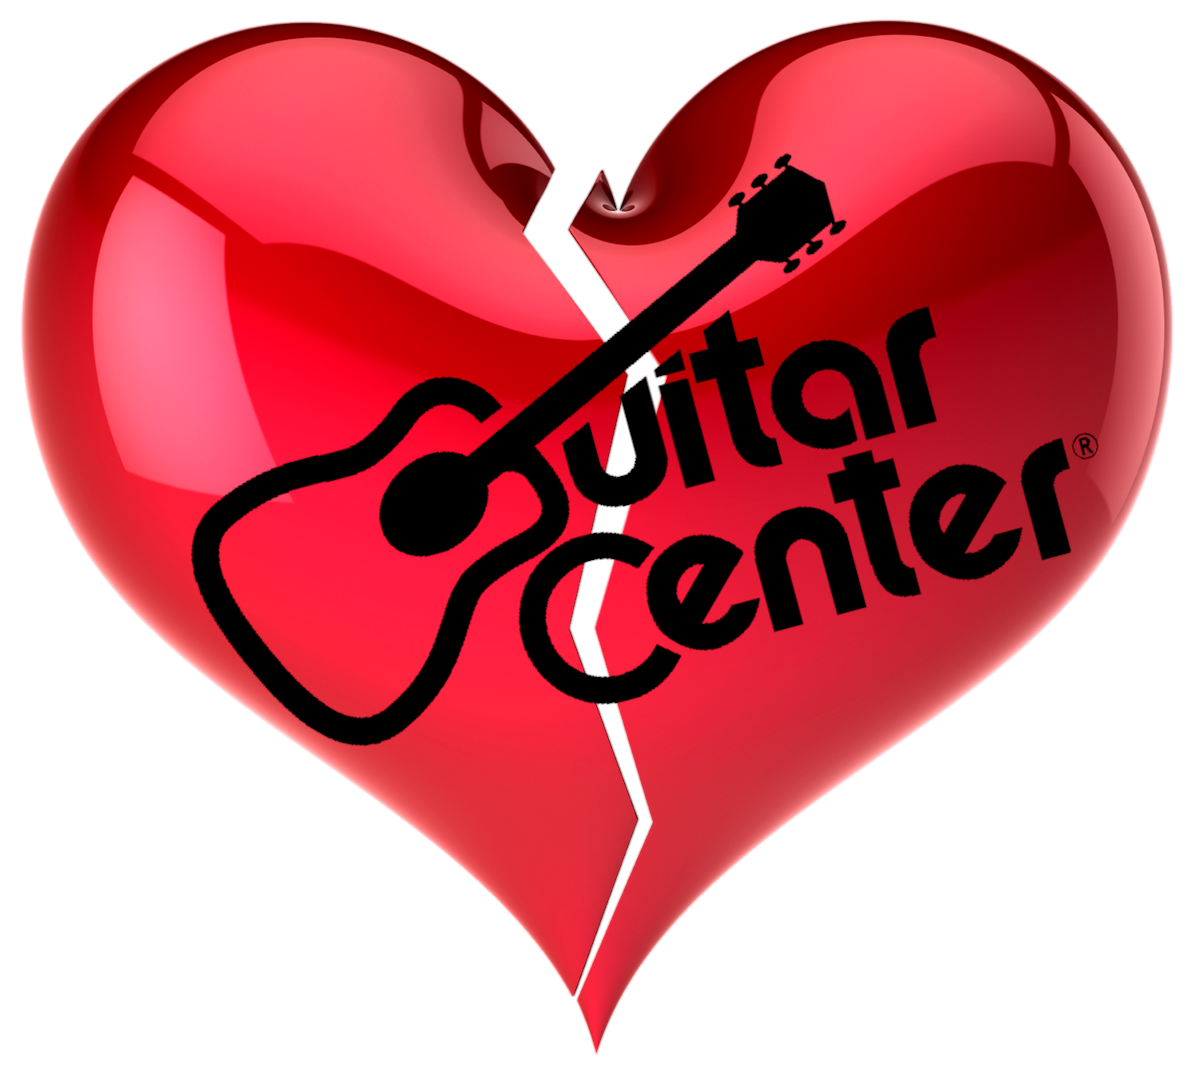 Am I Next? Guitar Center. Massive Debt Problems.